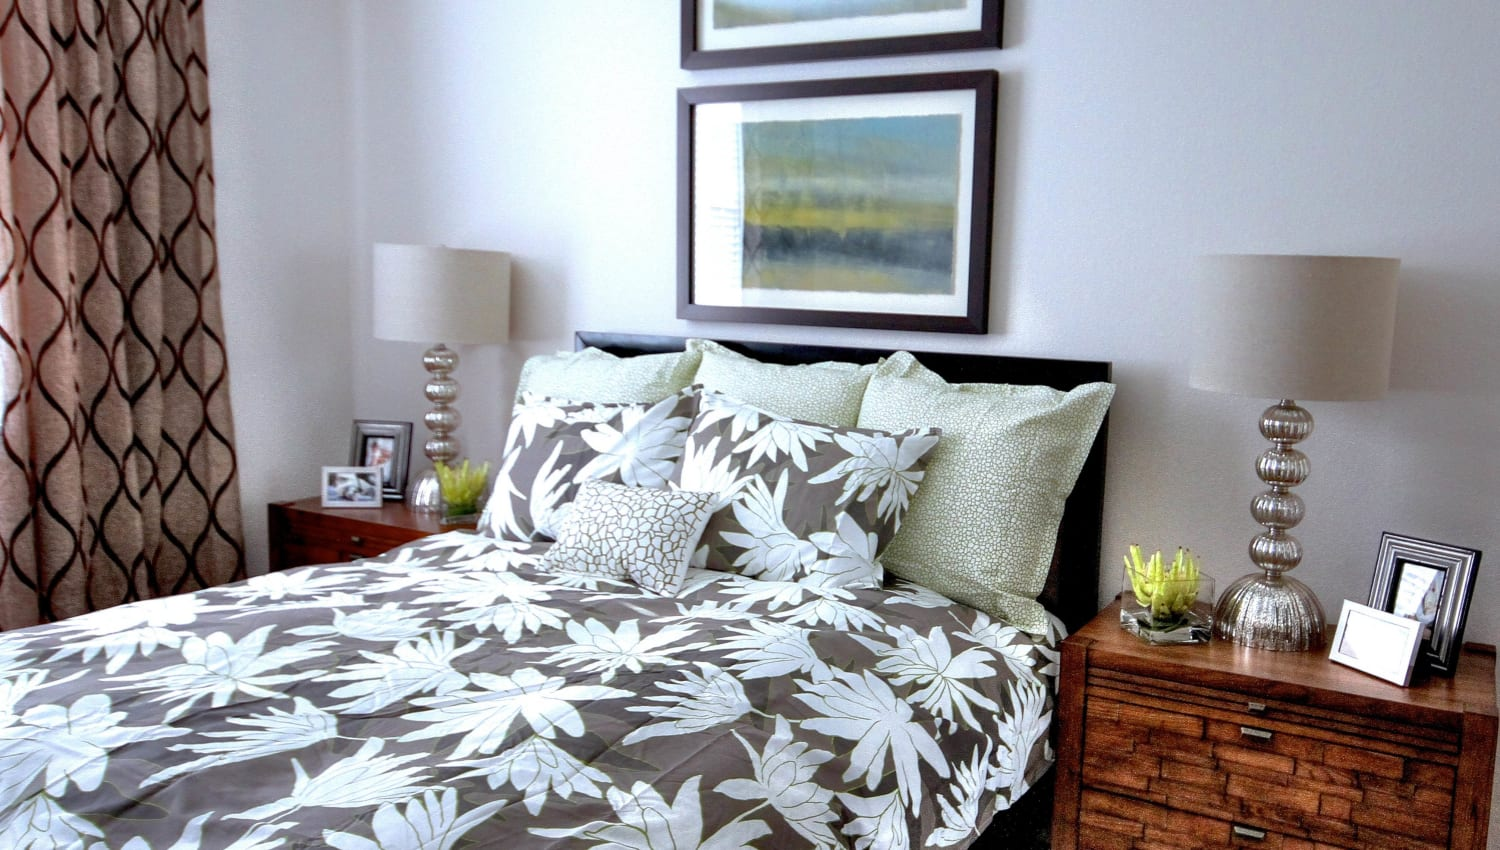 Comfortable furnishings in a model home's bedroom at Redstone at SanTan Village in Gilbert, Arizona